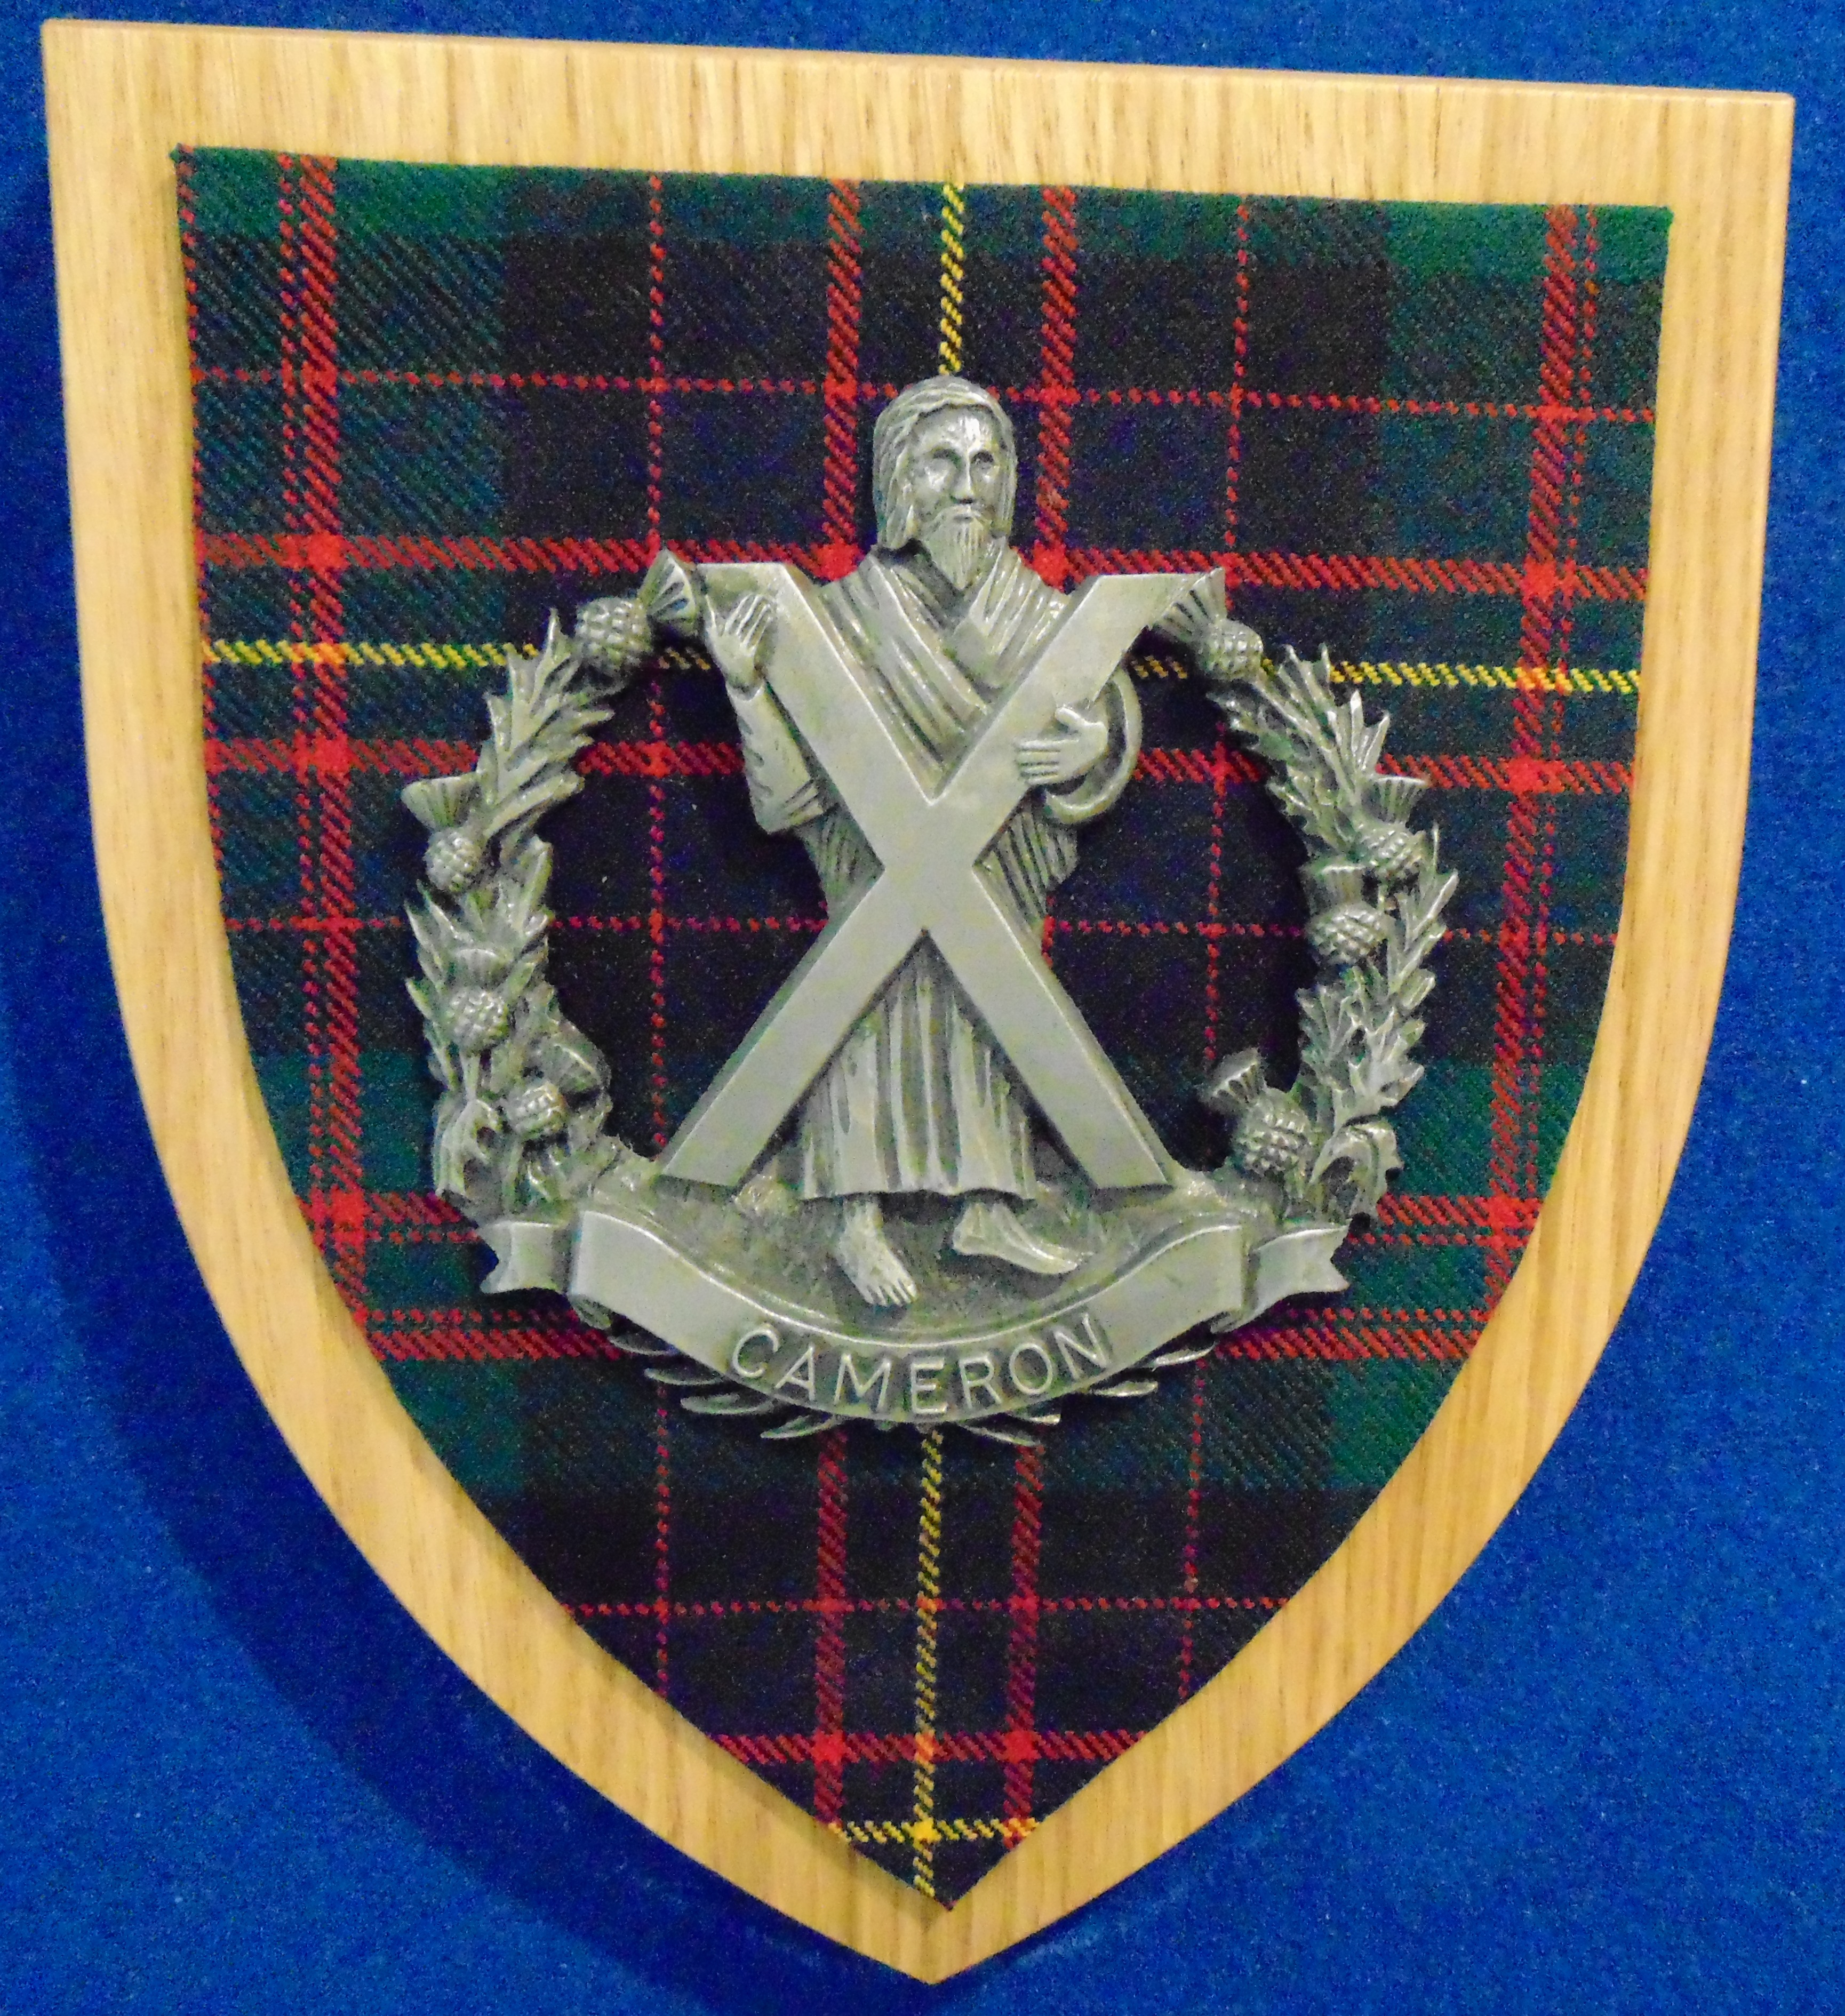 The Queen's Own Cameron Highlanders Wall Plaque